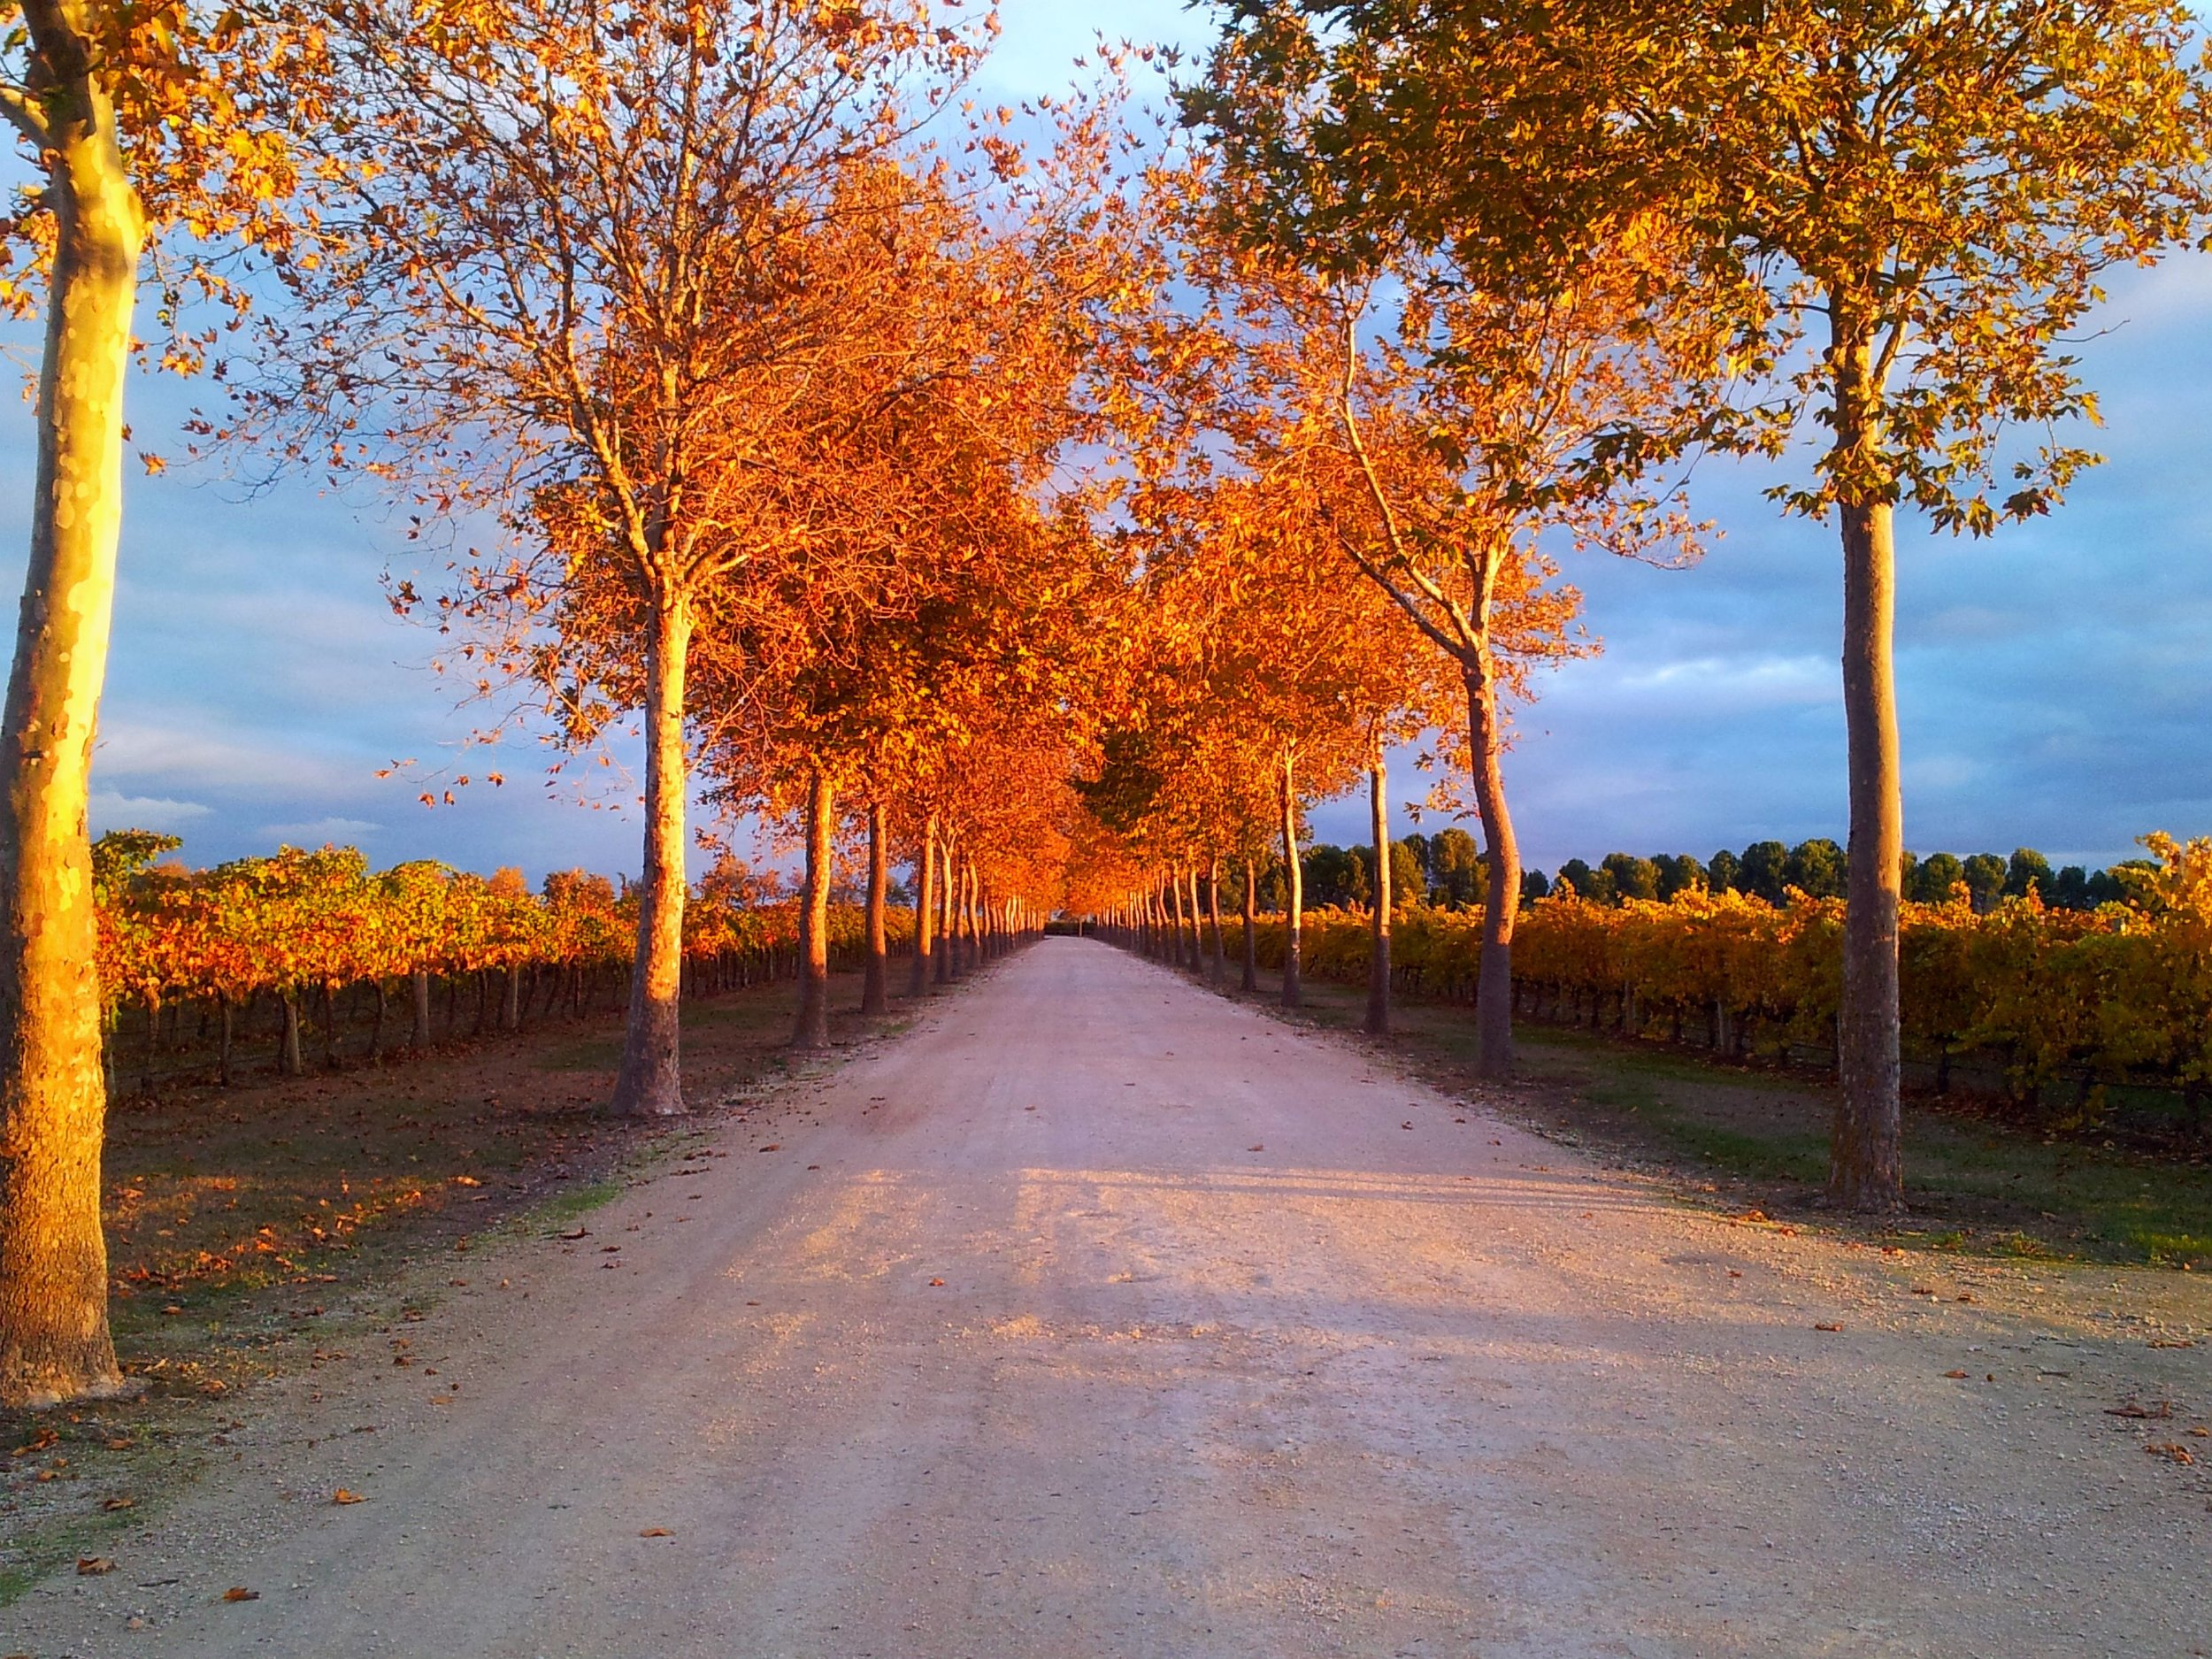 The driveway to Rymills in Autumn